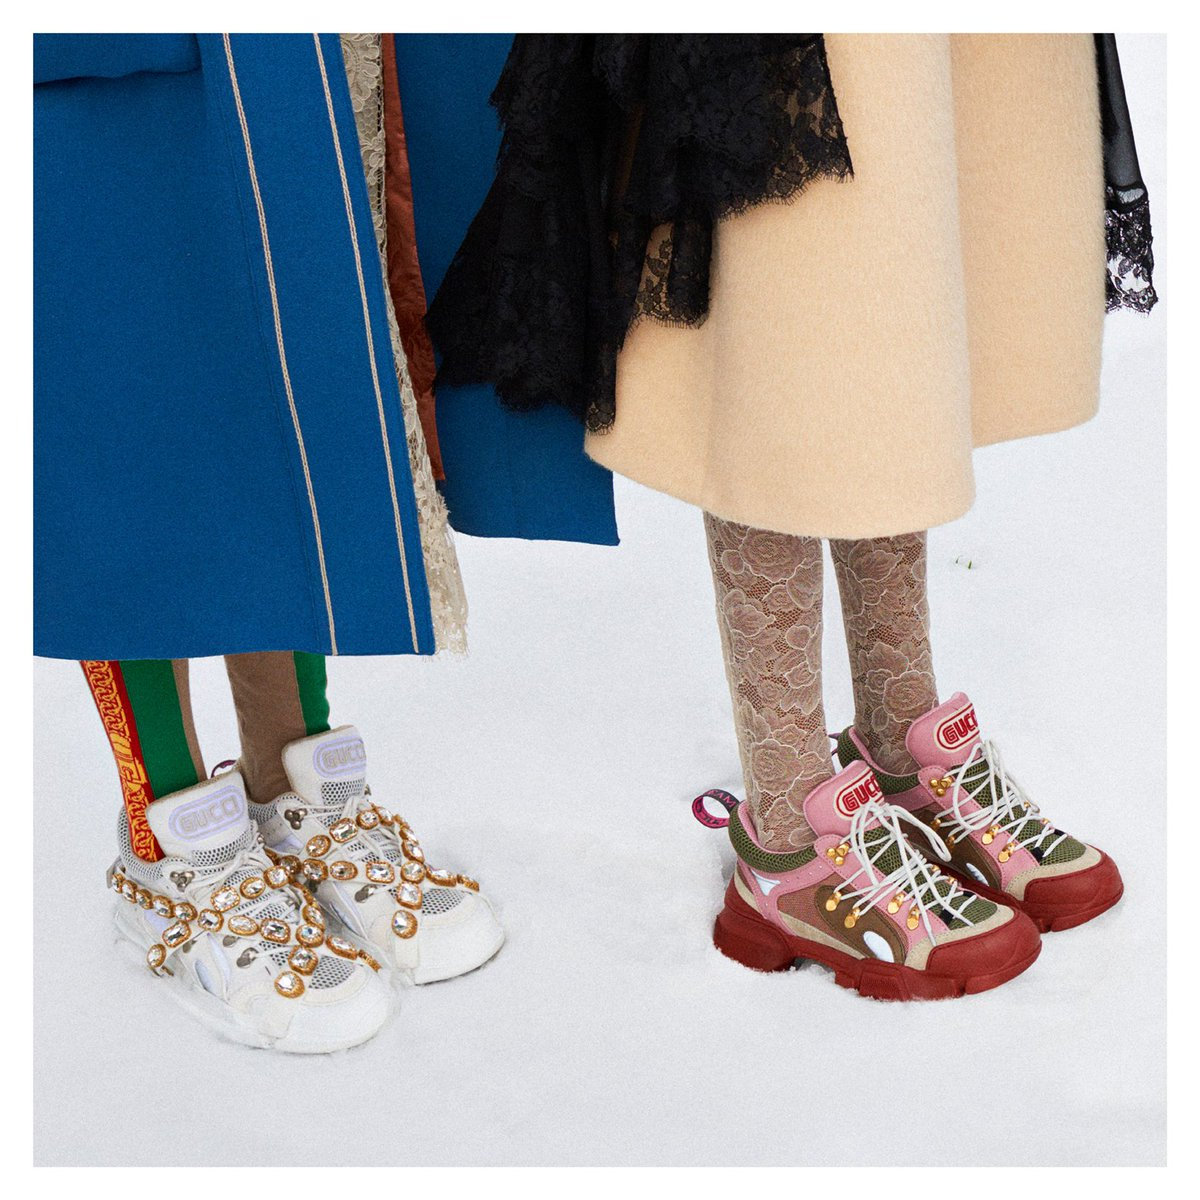 9f7d960b5 ... thick rubber sole and details inspired by hiking shoes, the  #GucciFlashtrek sneakers are decorated with removable elastic straps  adorned by crystals.